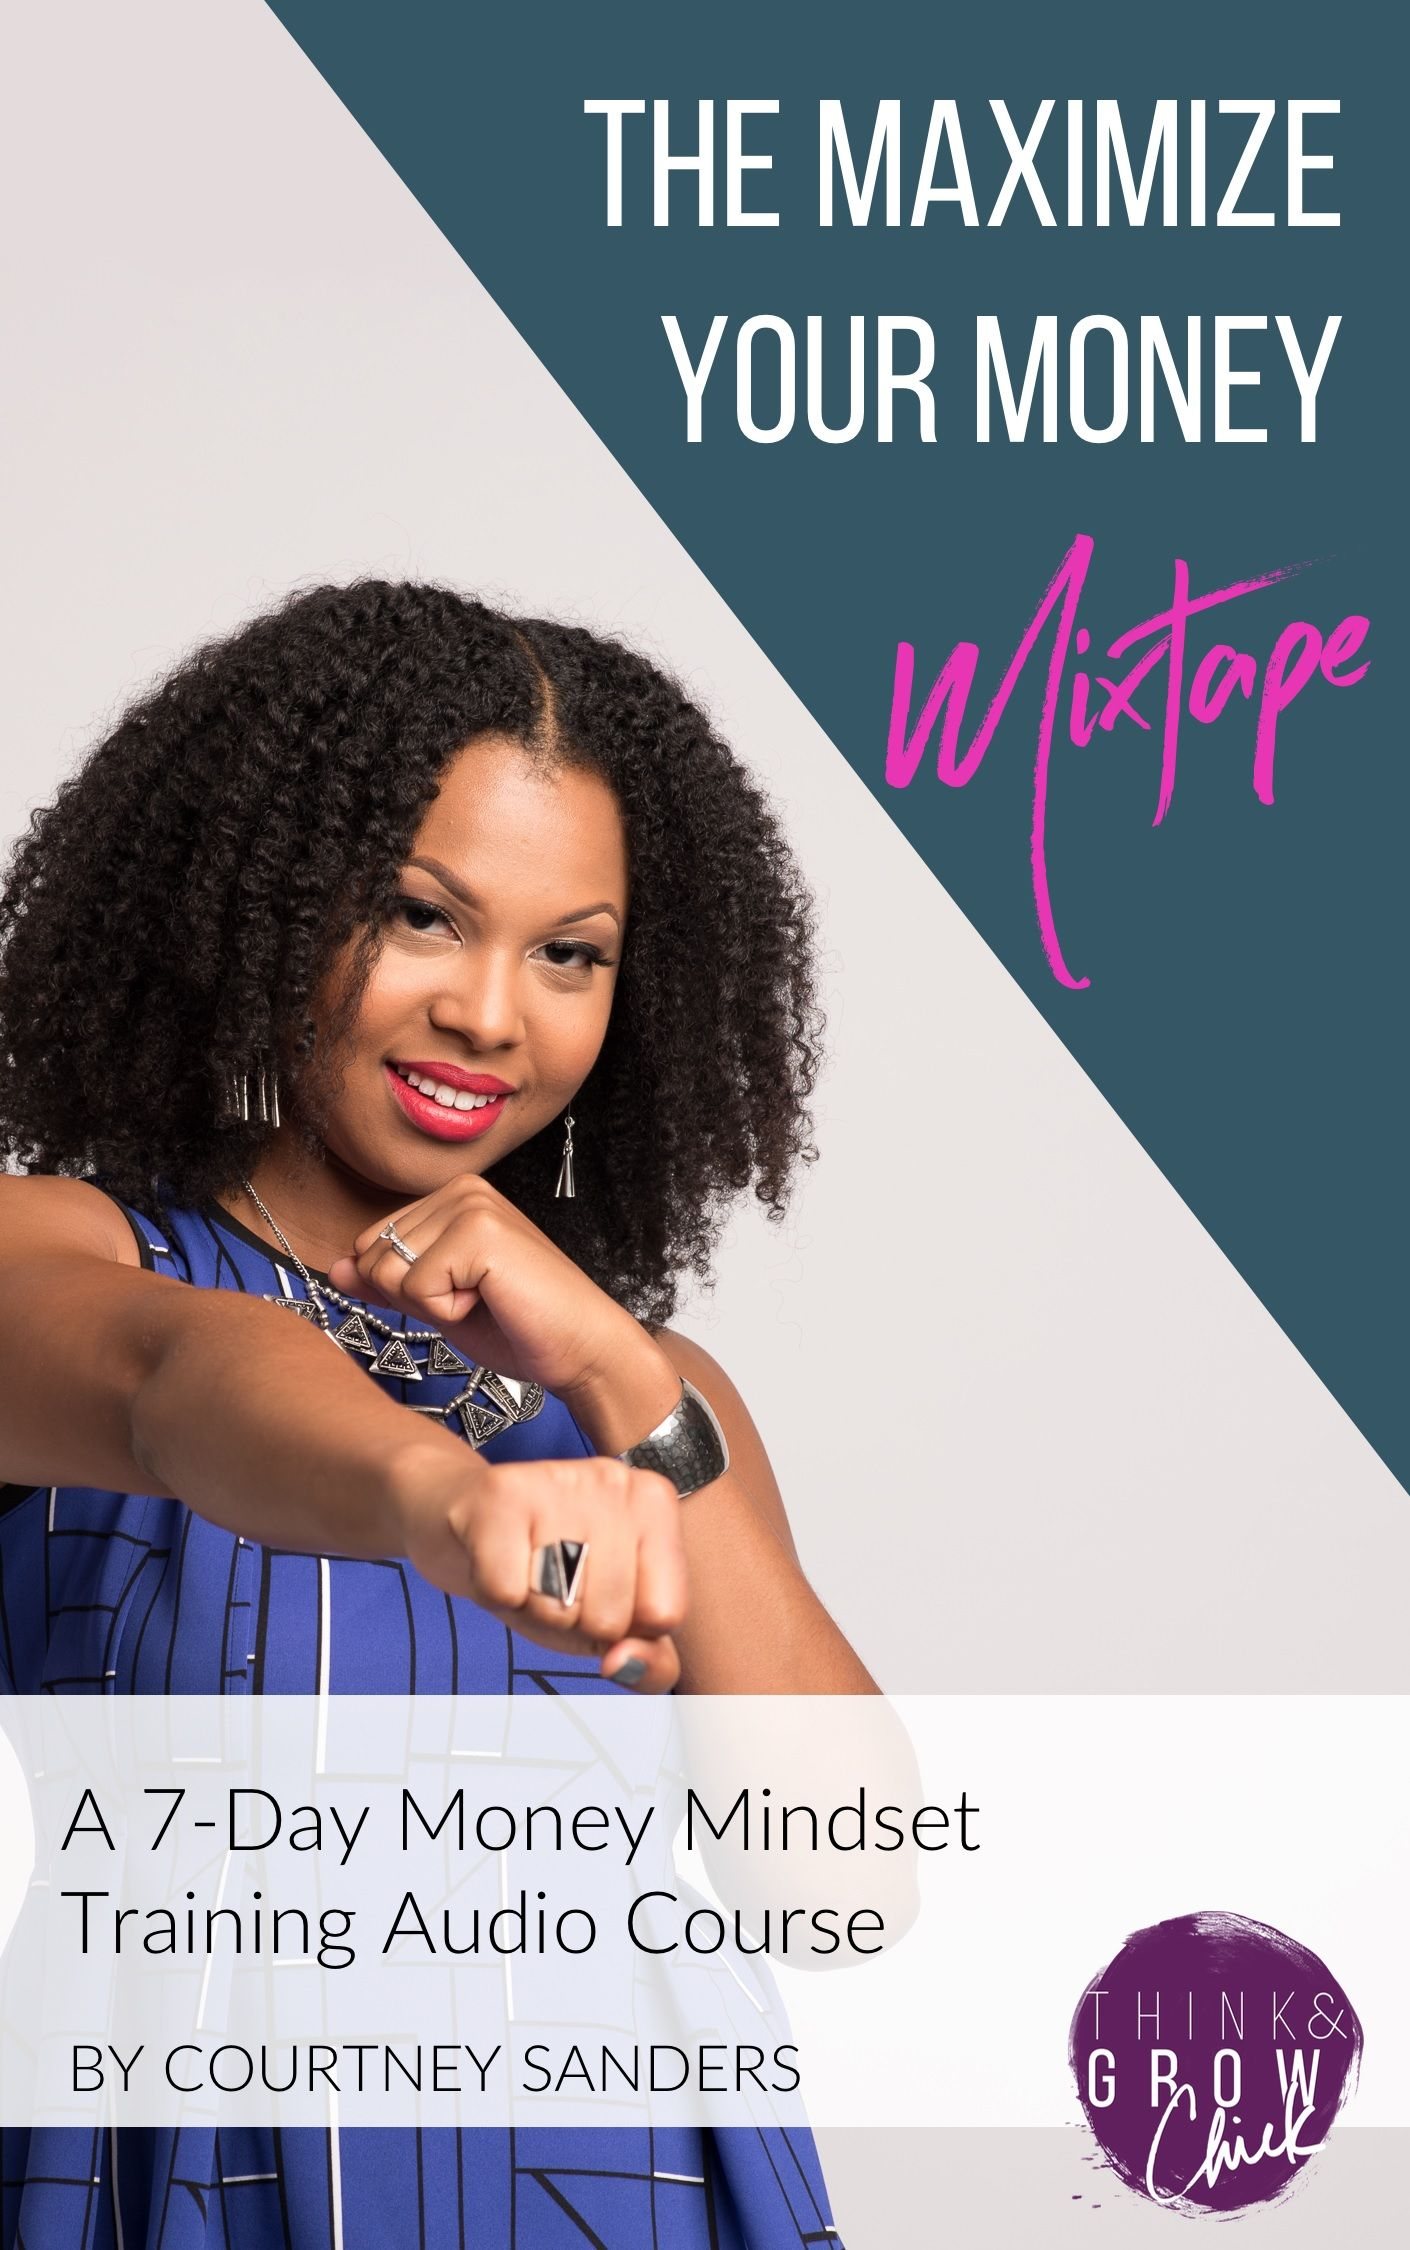 Inside this kit, you get not one but TWO powerful money mindset programs to help you transform your relationship with money. On December 1, 2015, you'll receive immediate access to all program audios, worksheets and files. Though both programs are 7 day trainings, they are designed for you to go at your own pace. Dive into both programs at the same time, or take one after the other.